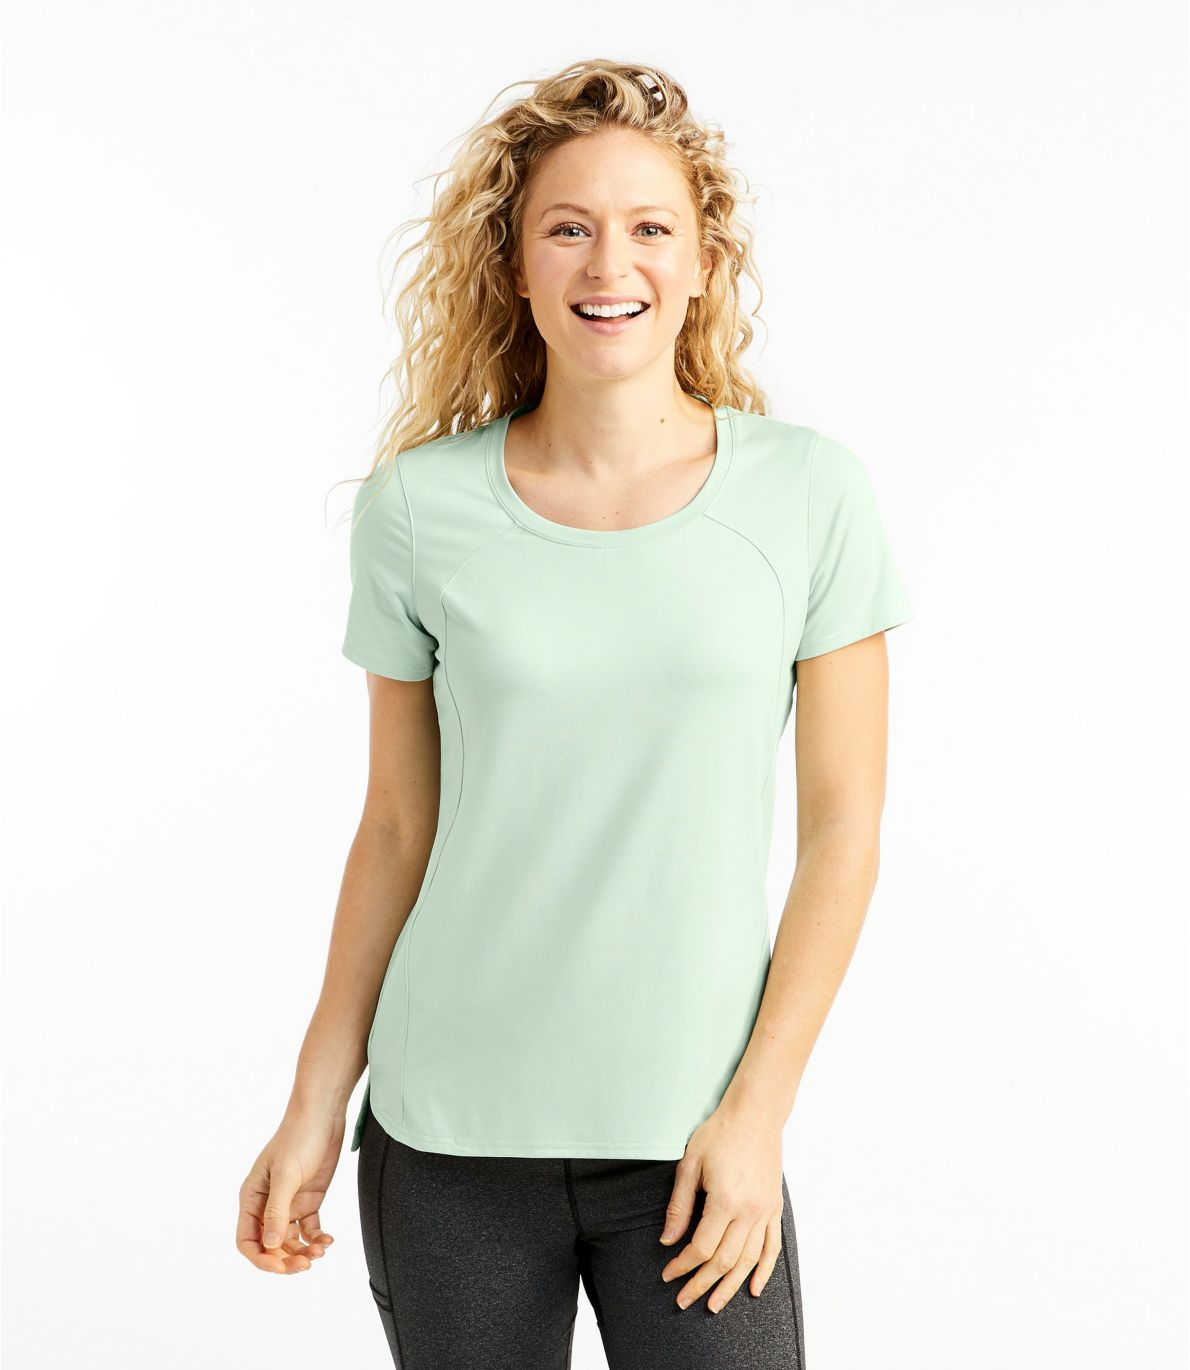 Women's All-Day Active UPF Tee, Short-Sleeve